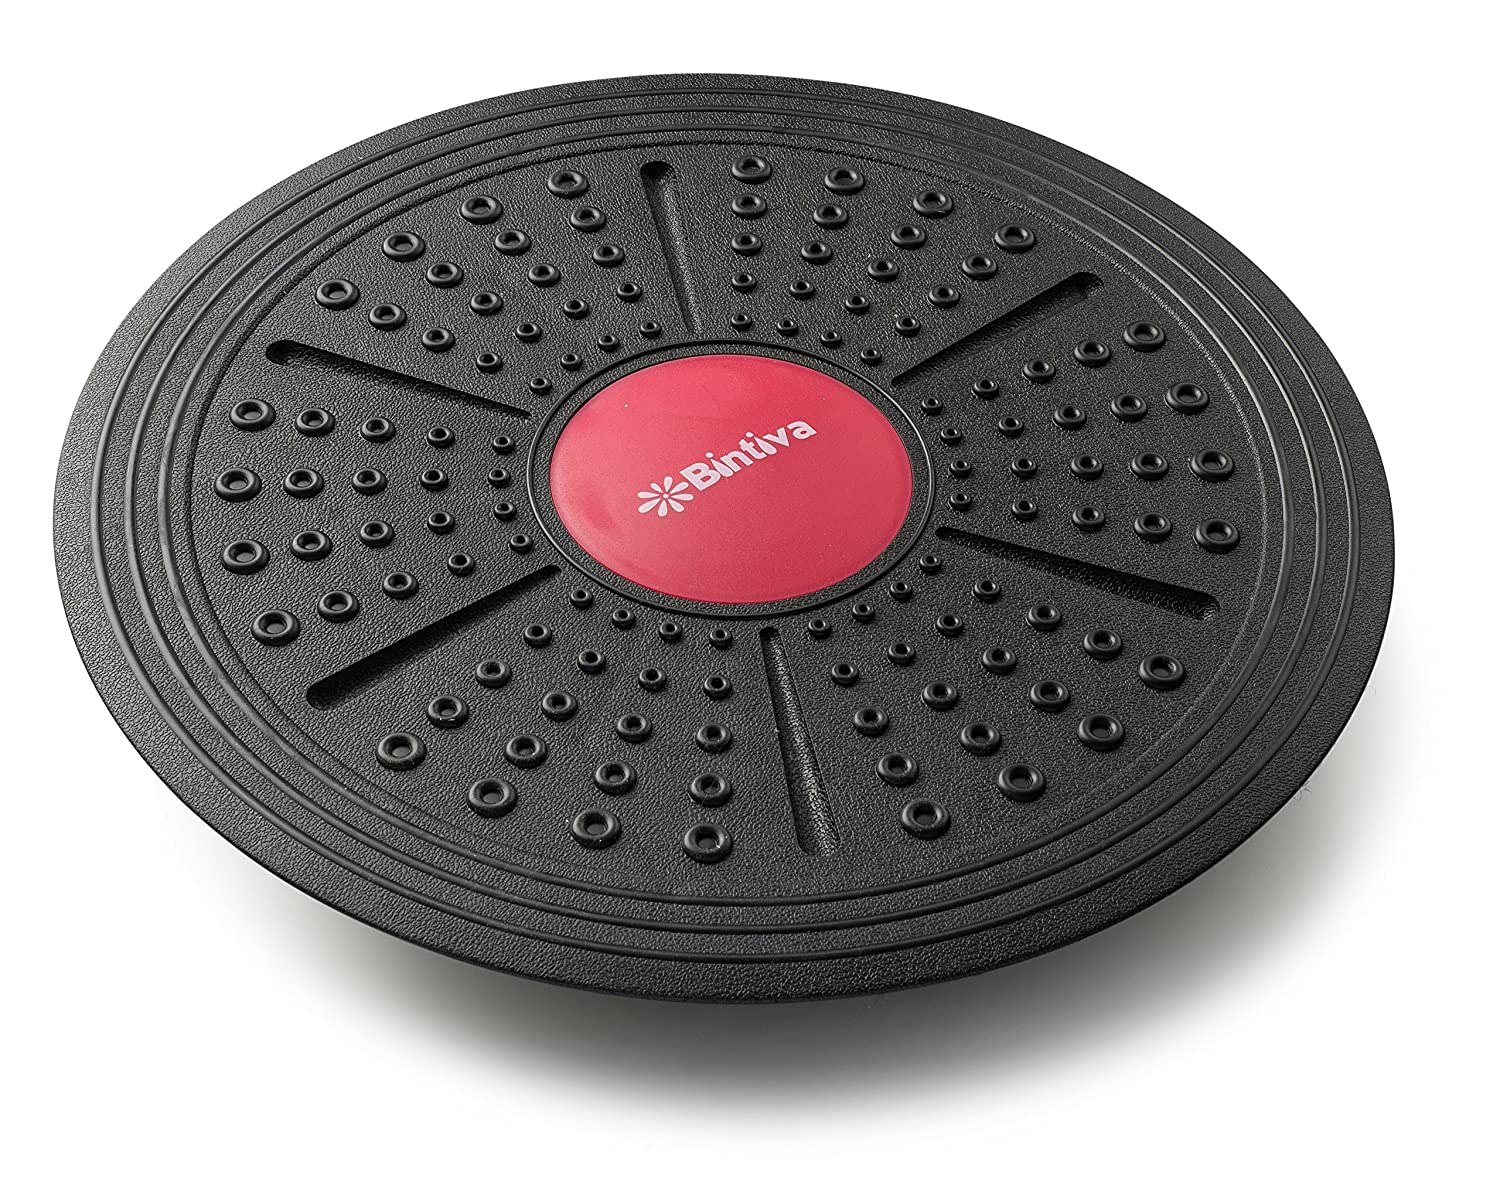 bintiva Adjustable Balance Board, Extra Wide Diameter, for Fitness, Balance, and Stability Training